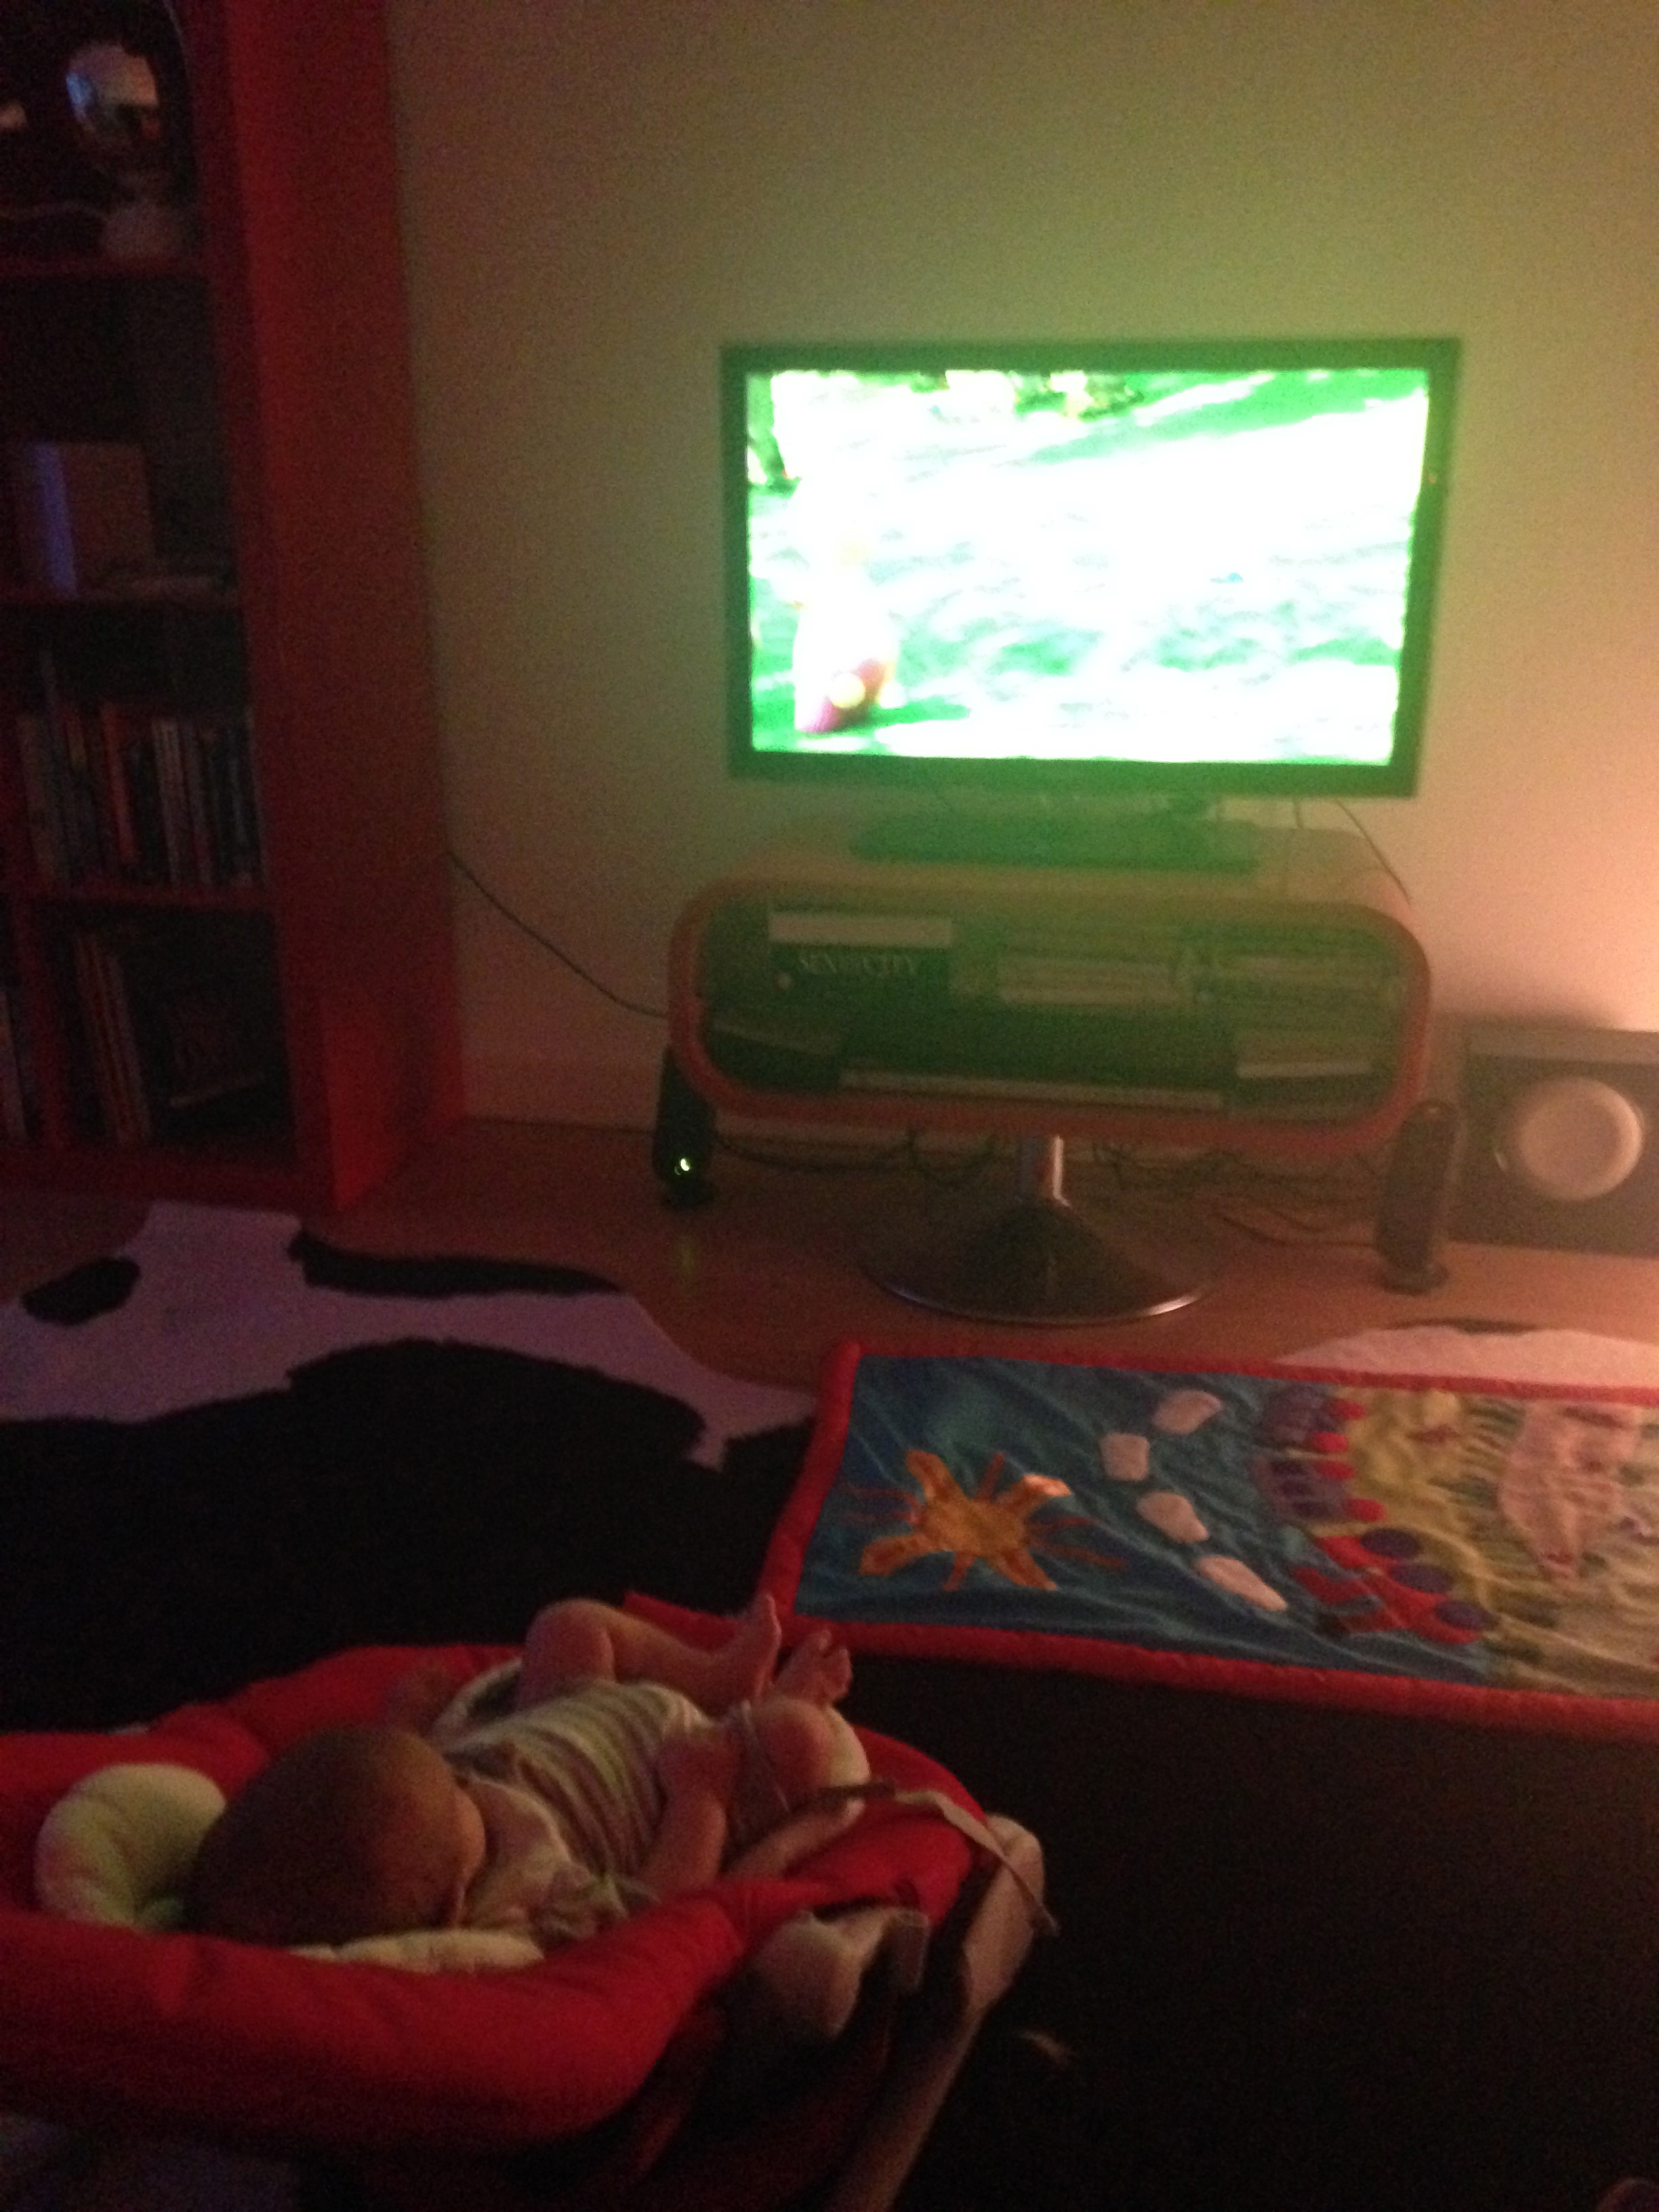 Piglet is ten weeks old, and I find myself asking the question, how much TV is too much?